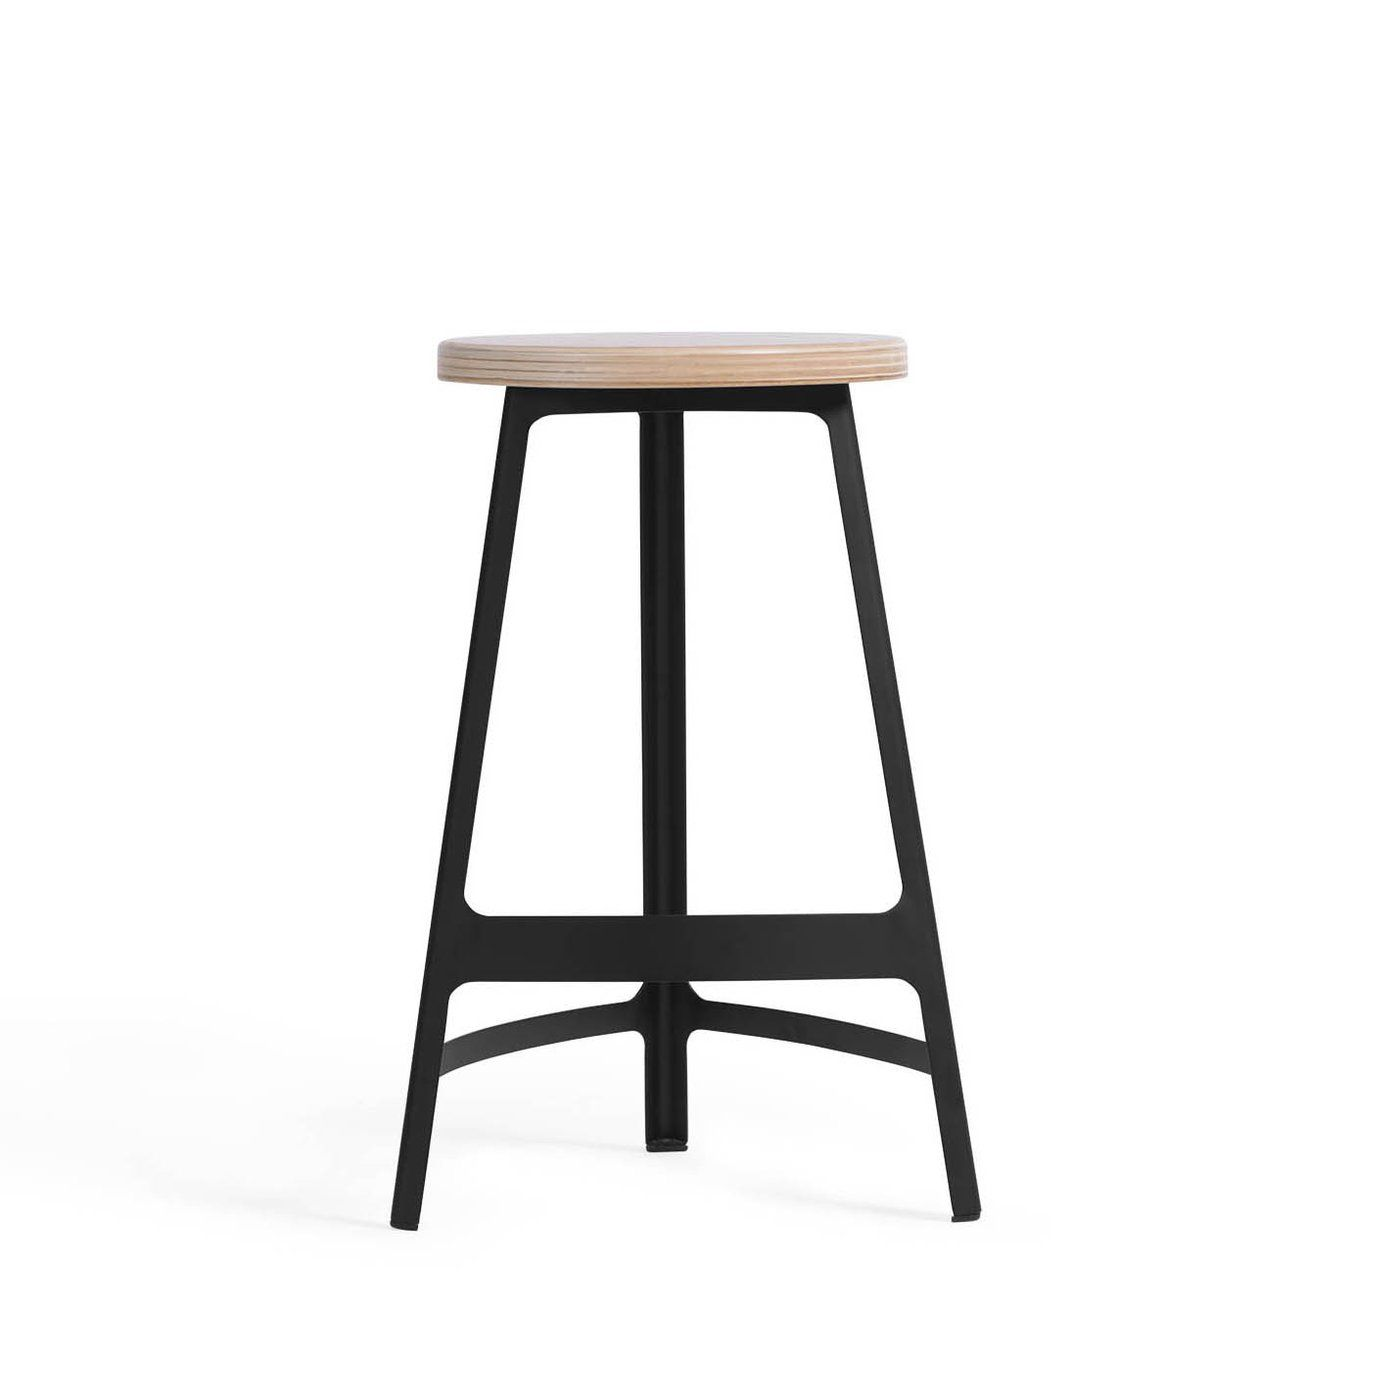 Groovy Mid Century Trio Counter Stool Reid Law Office Counter Unemploymentrelief Wooden Chair Designs For Living Room Unemploymentrelieforg